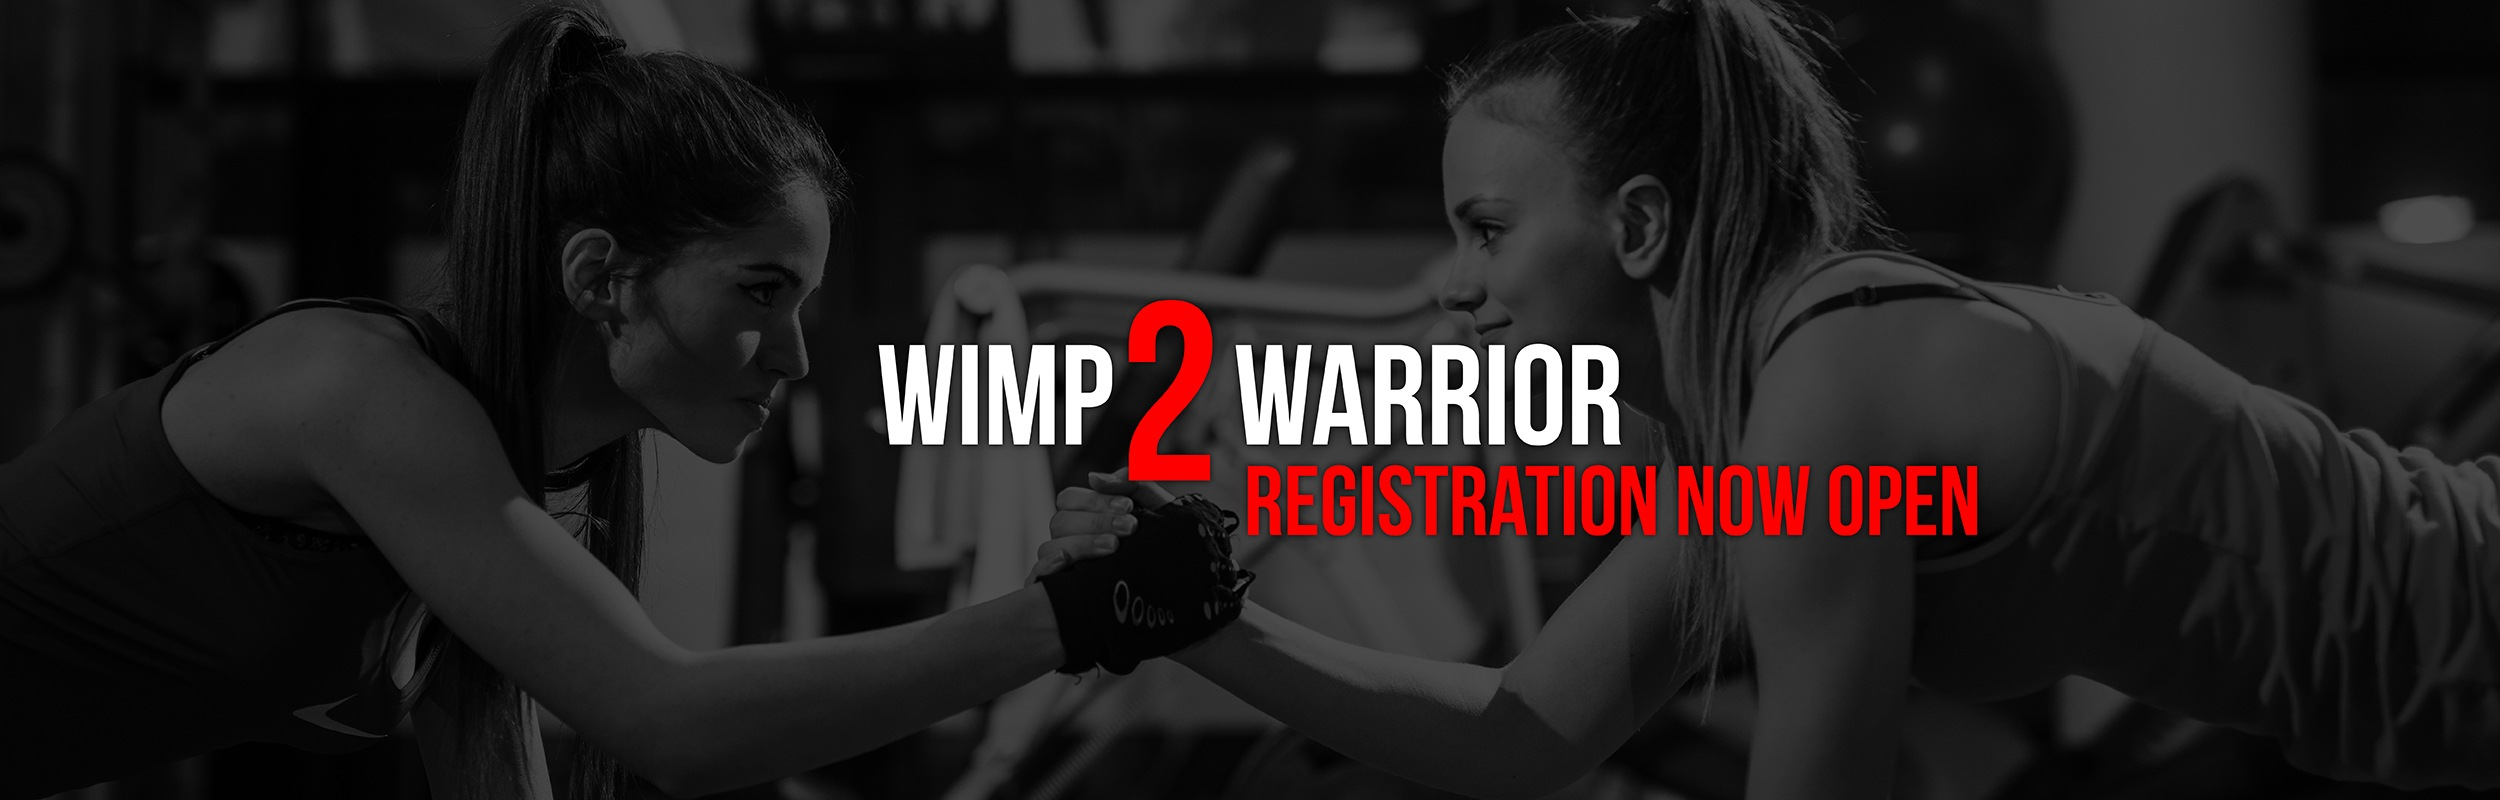 Wimp 2 Warrior Round 2: Registrations Now Open